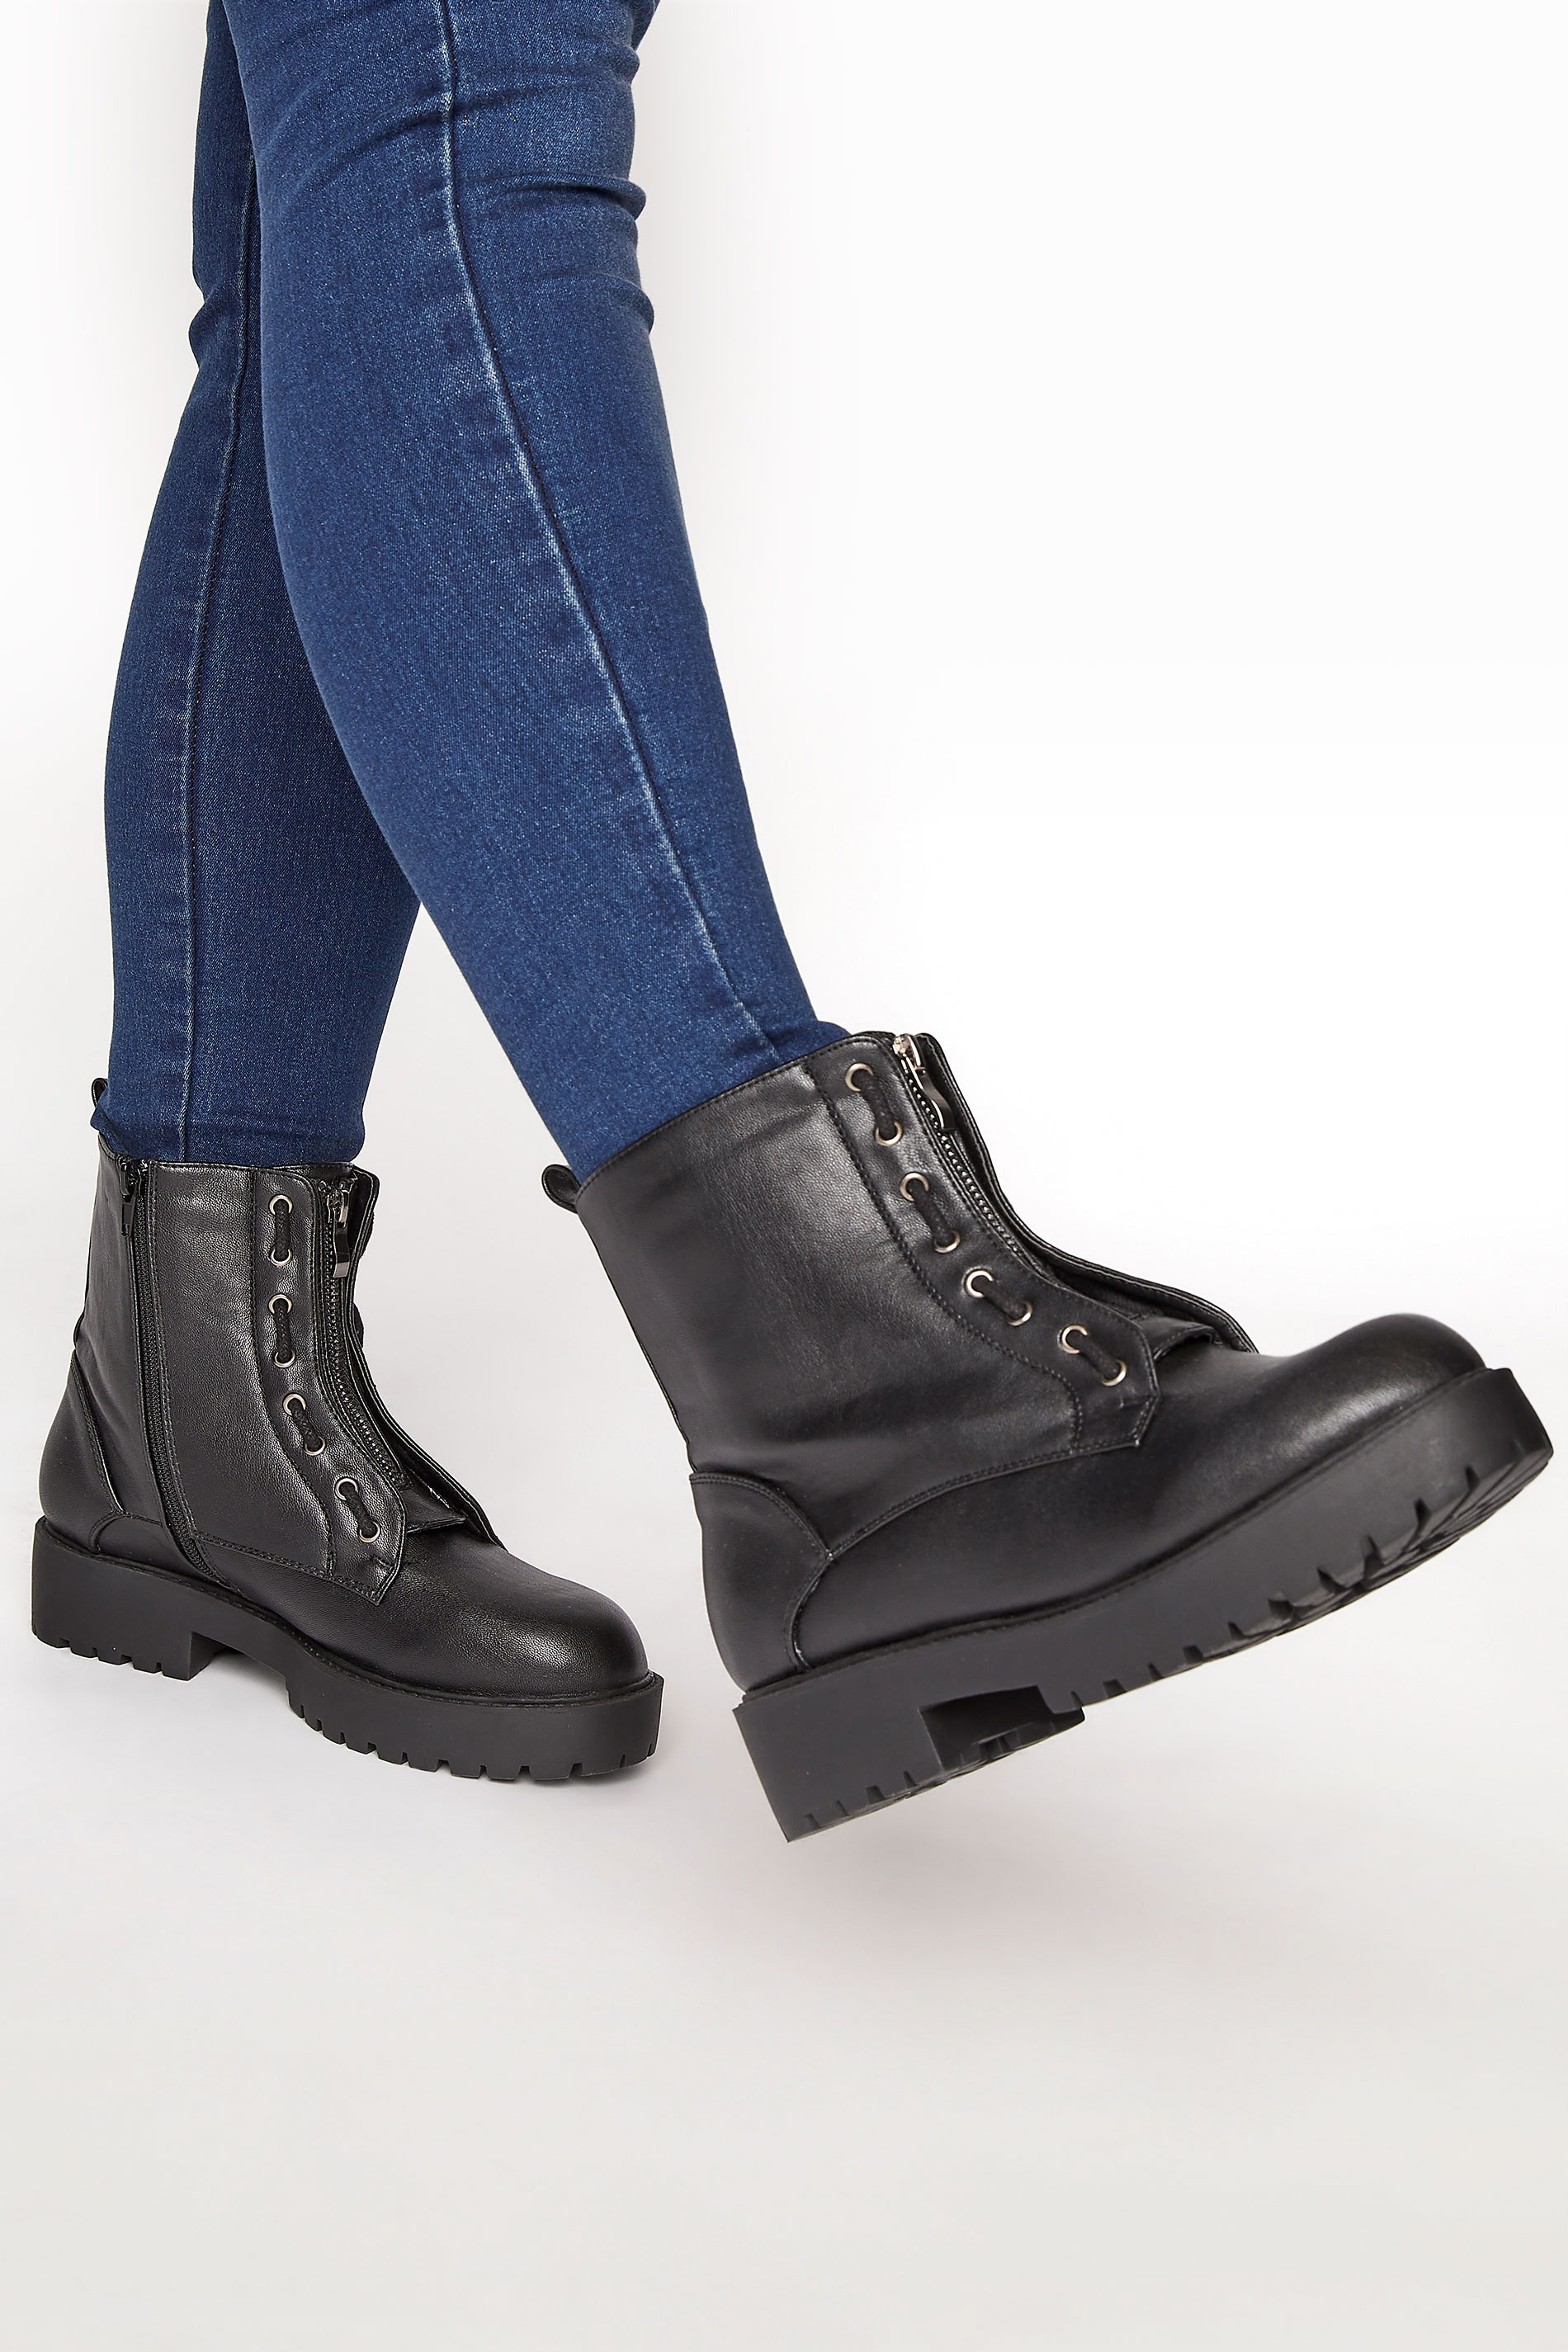 LIMITED COLLECTION Black Vegan Faux Leather Zip Chunky Boots In Wide Fit_M.jpg